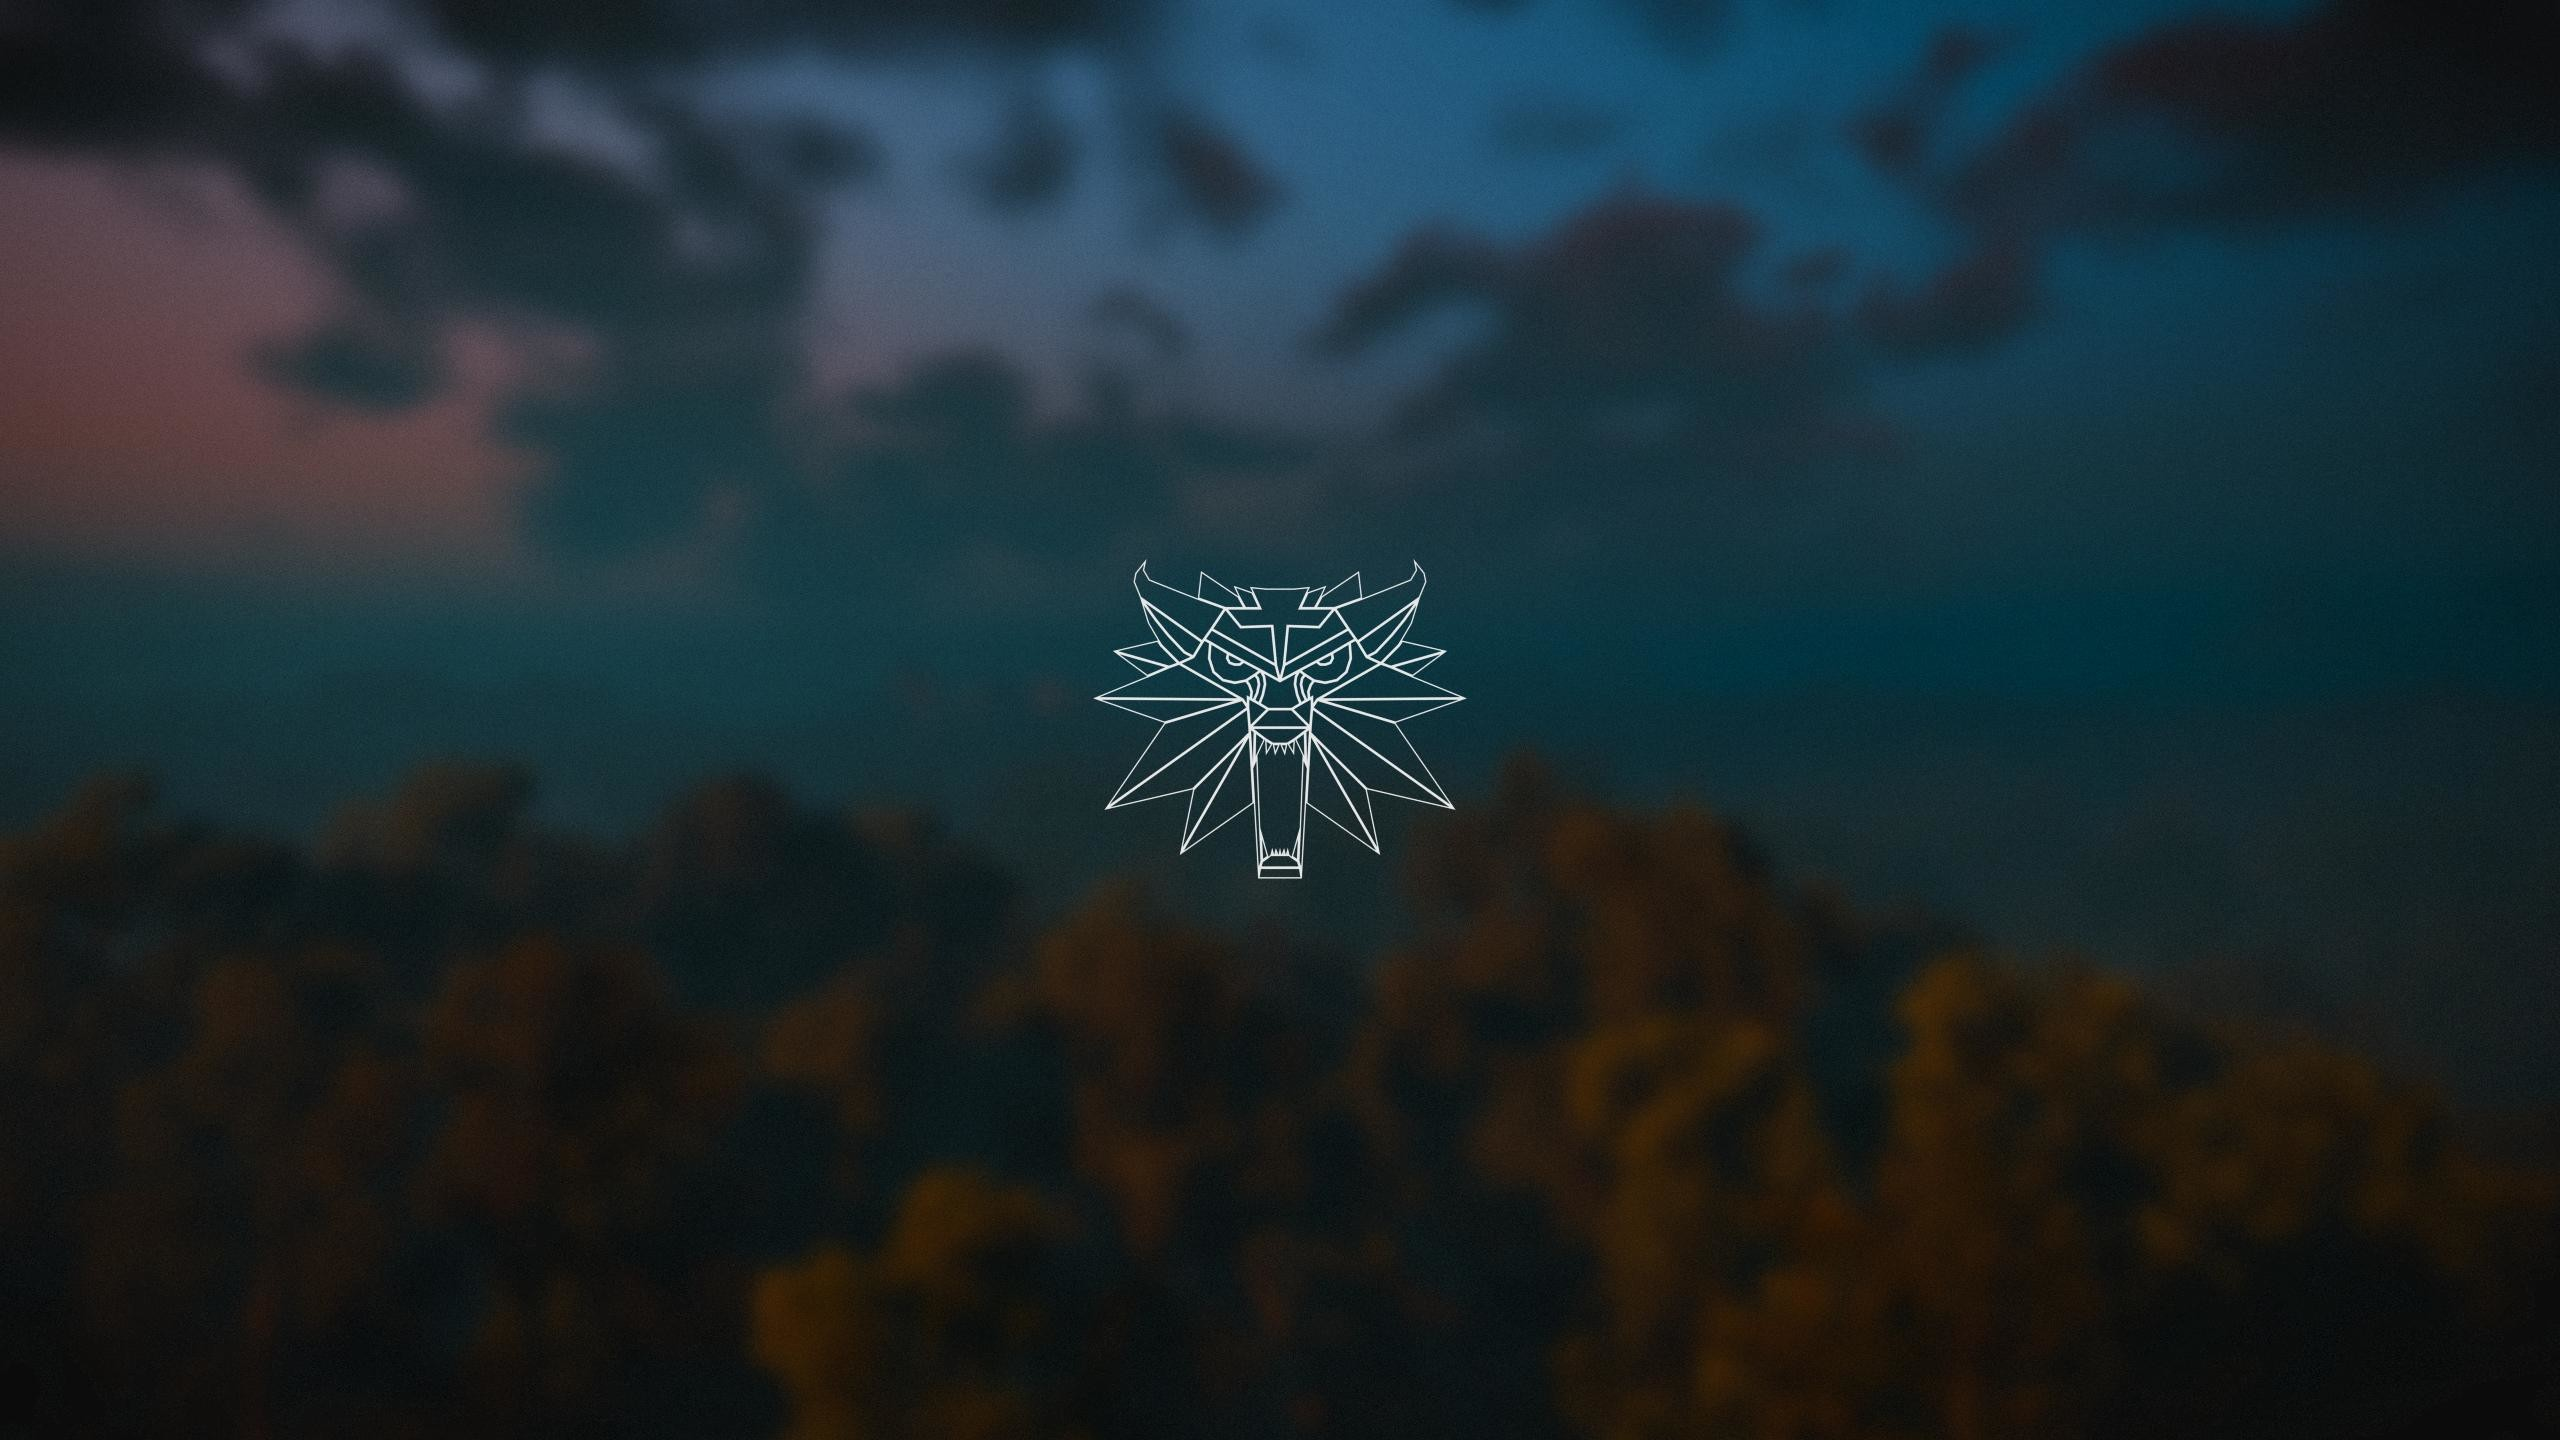 Res: 2560x1440, The Witcher 3 Minimalist Wallpapers High Definition For Iphone Wallpaper HD